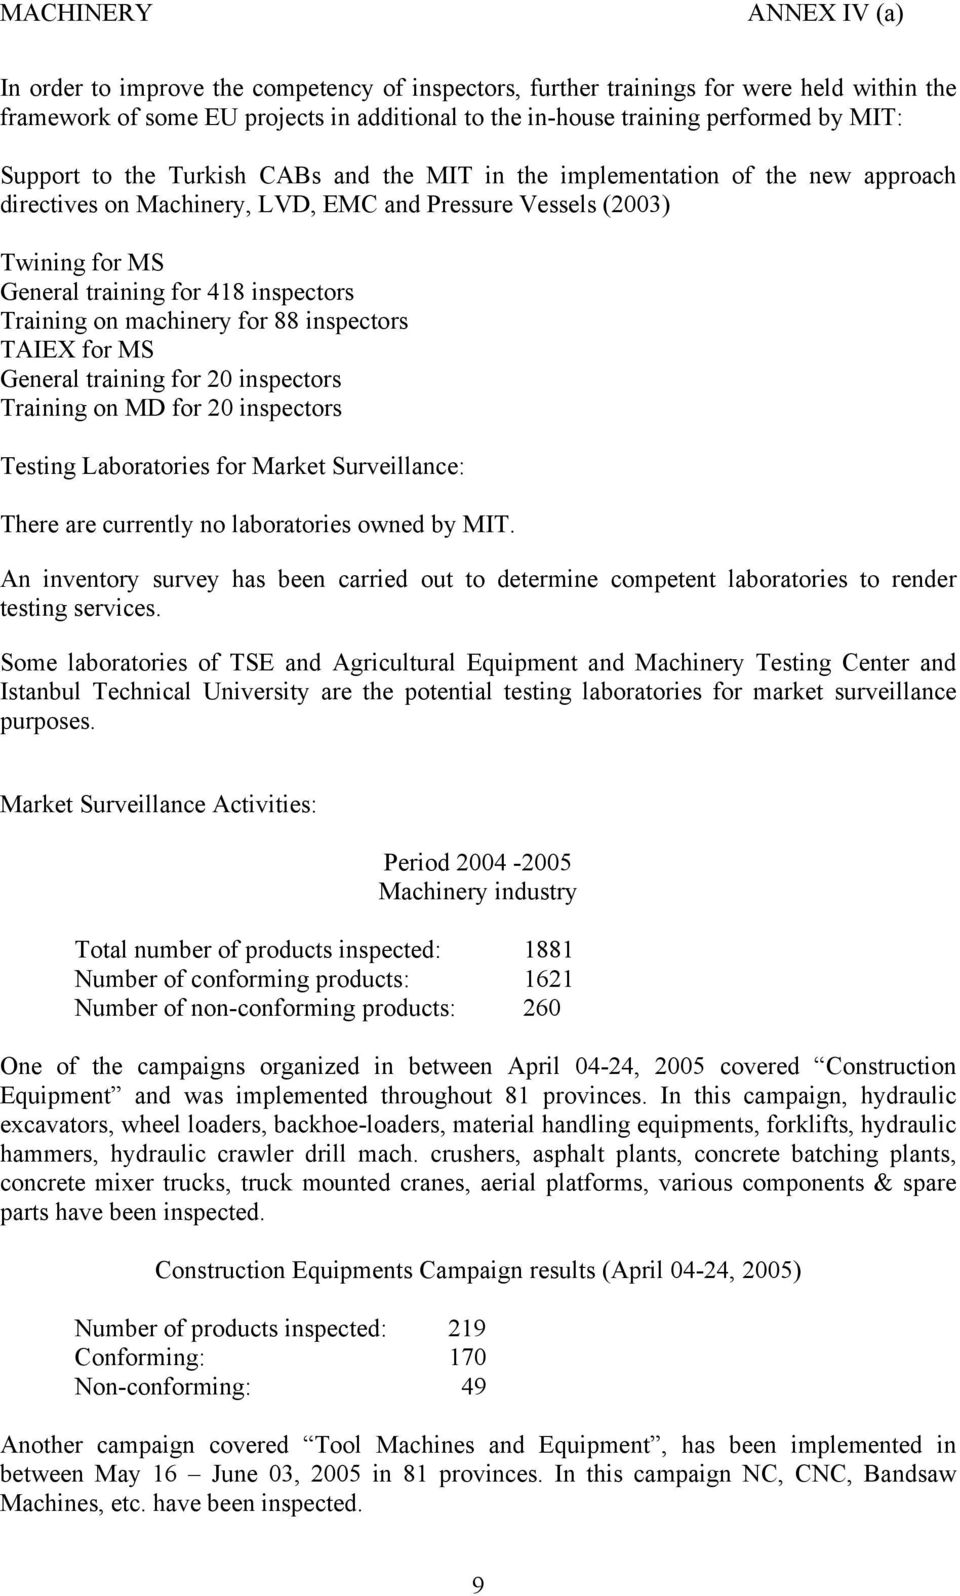 machinery for 88 inspectors TAIEX for MS General training for 20 inspectors Training on MD for 20 inspectors Testing Laboratories for Market Surveillance: There are currently no laboratories owned by